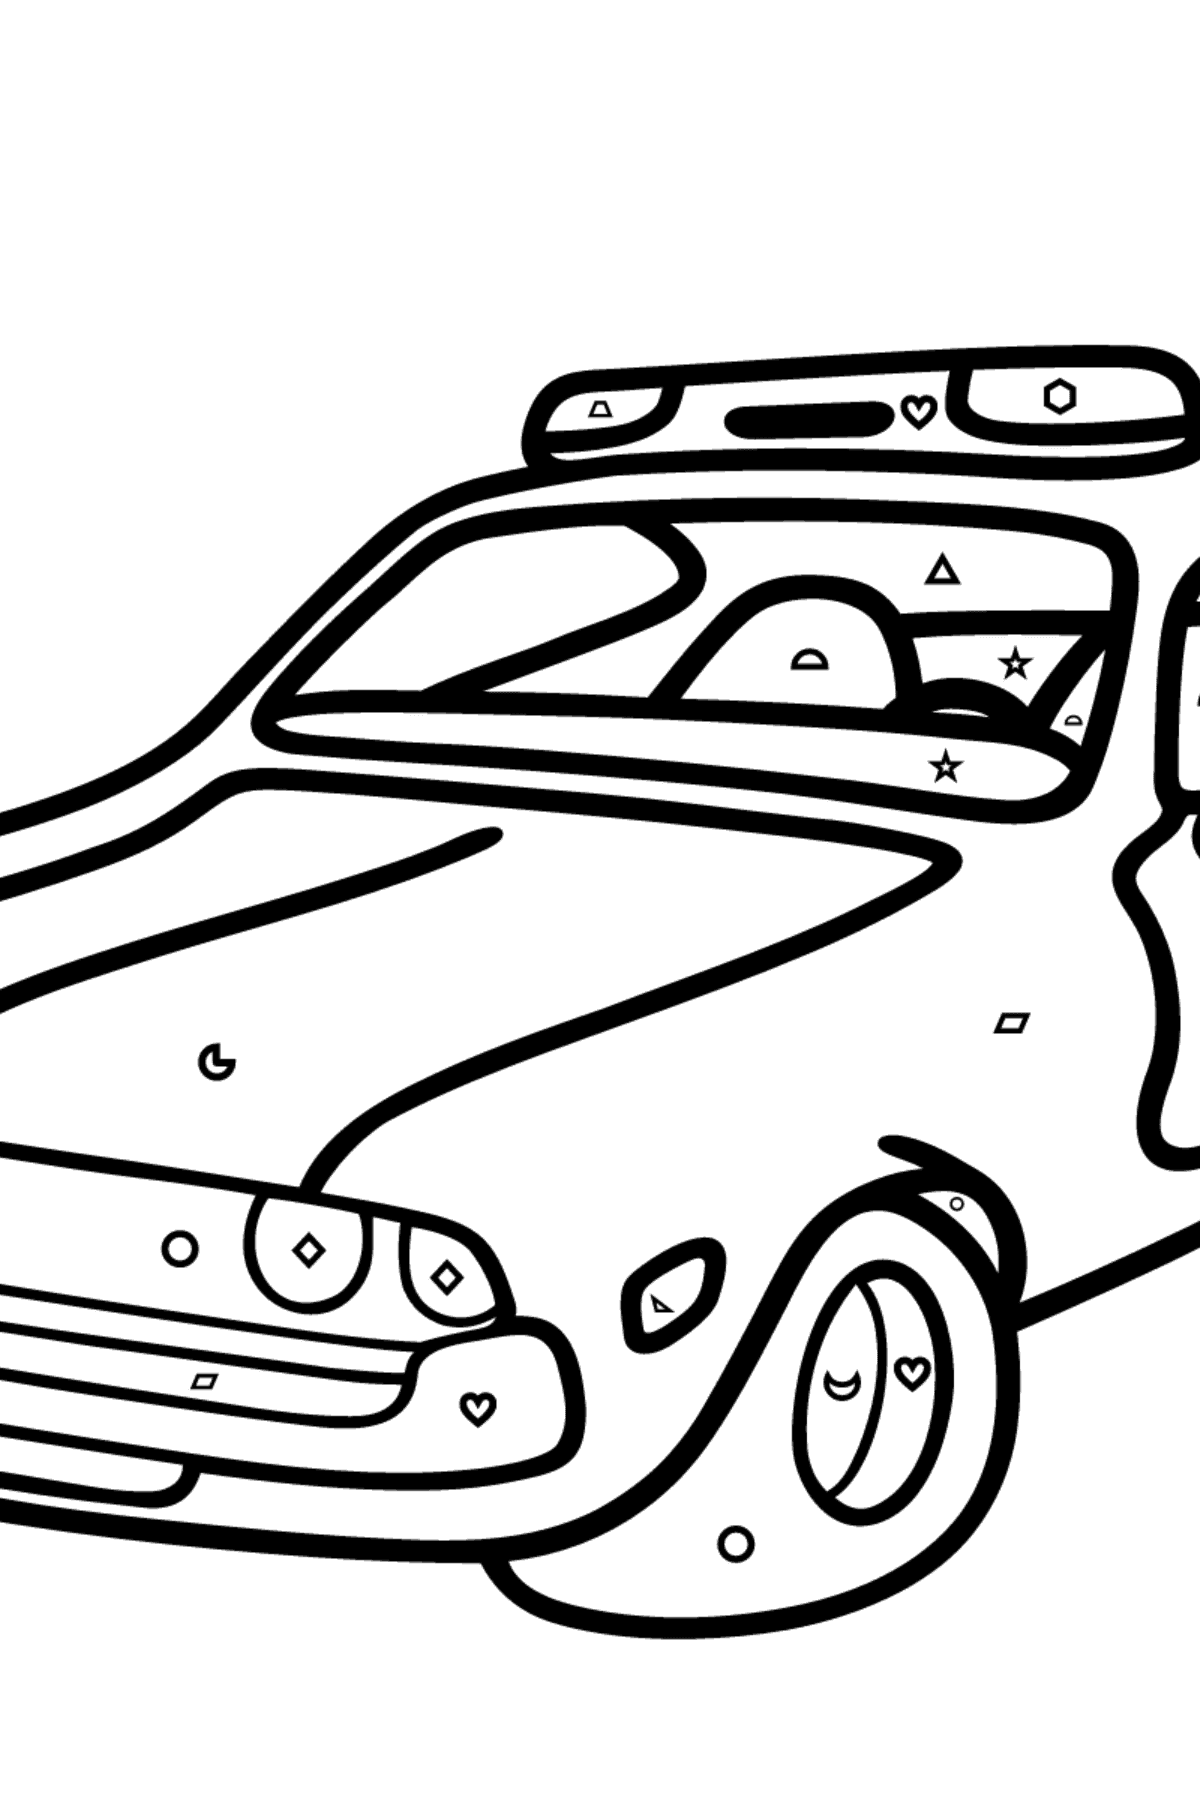 Coloring Page - A Dark Gray Police Car for Children  - Color by Geometric Shapes